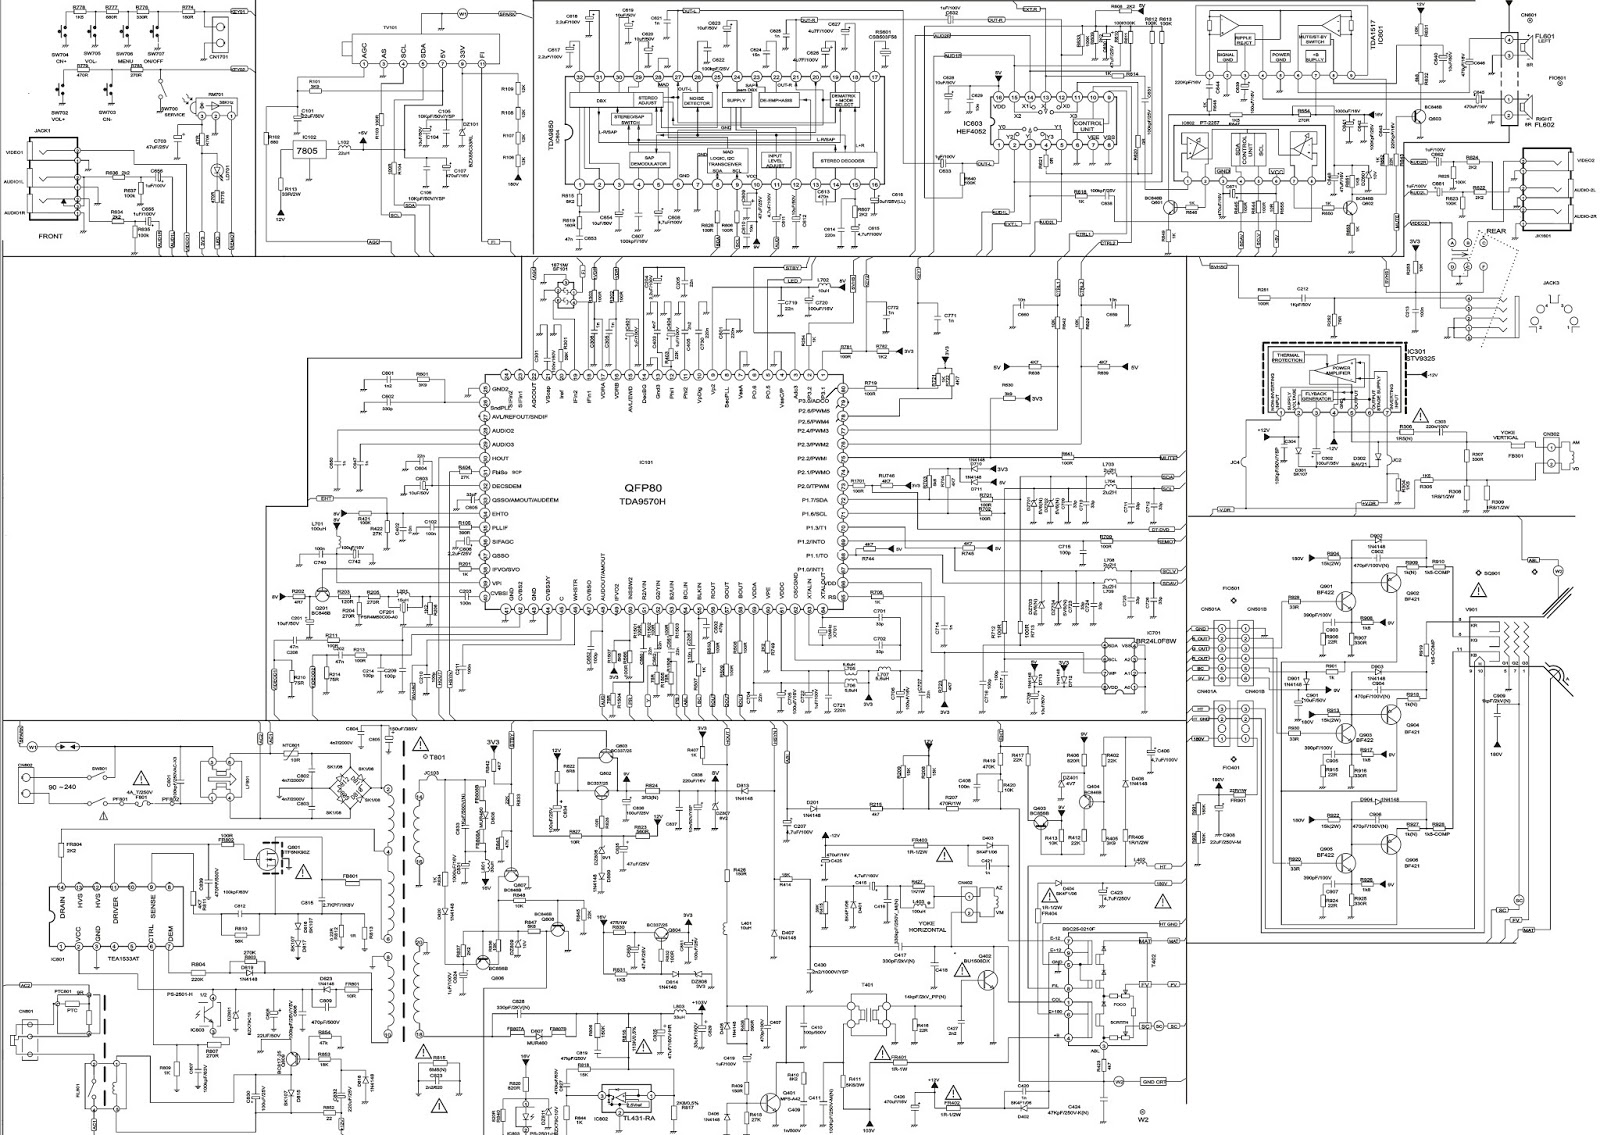 medium resolution of crt tv circuit diagram wiring diagrams crt tv structure crt tv power diagram